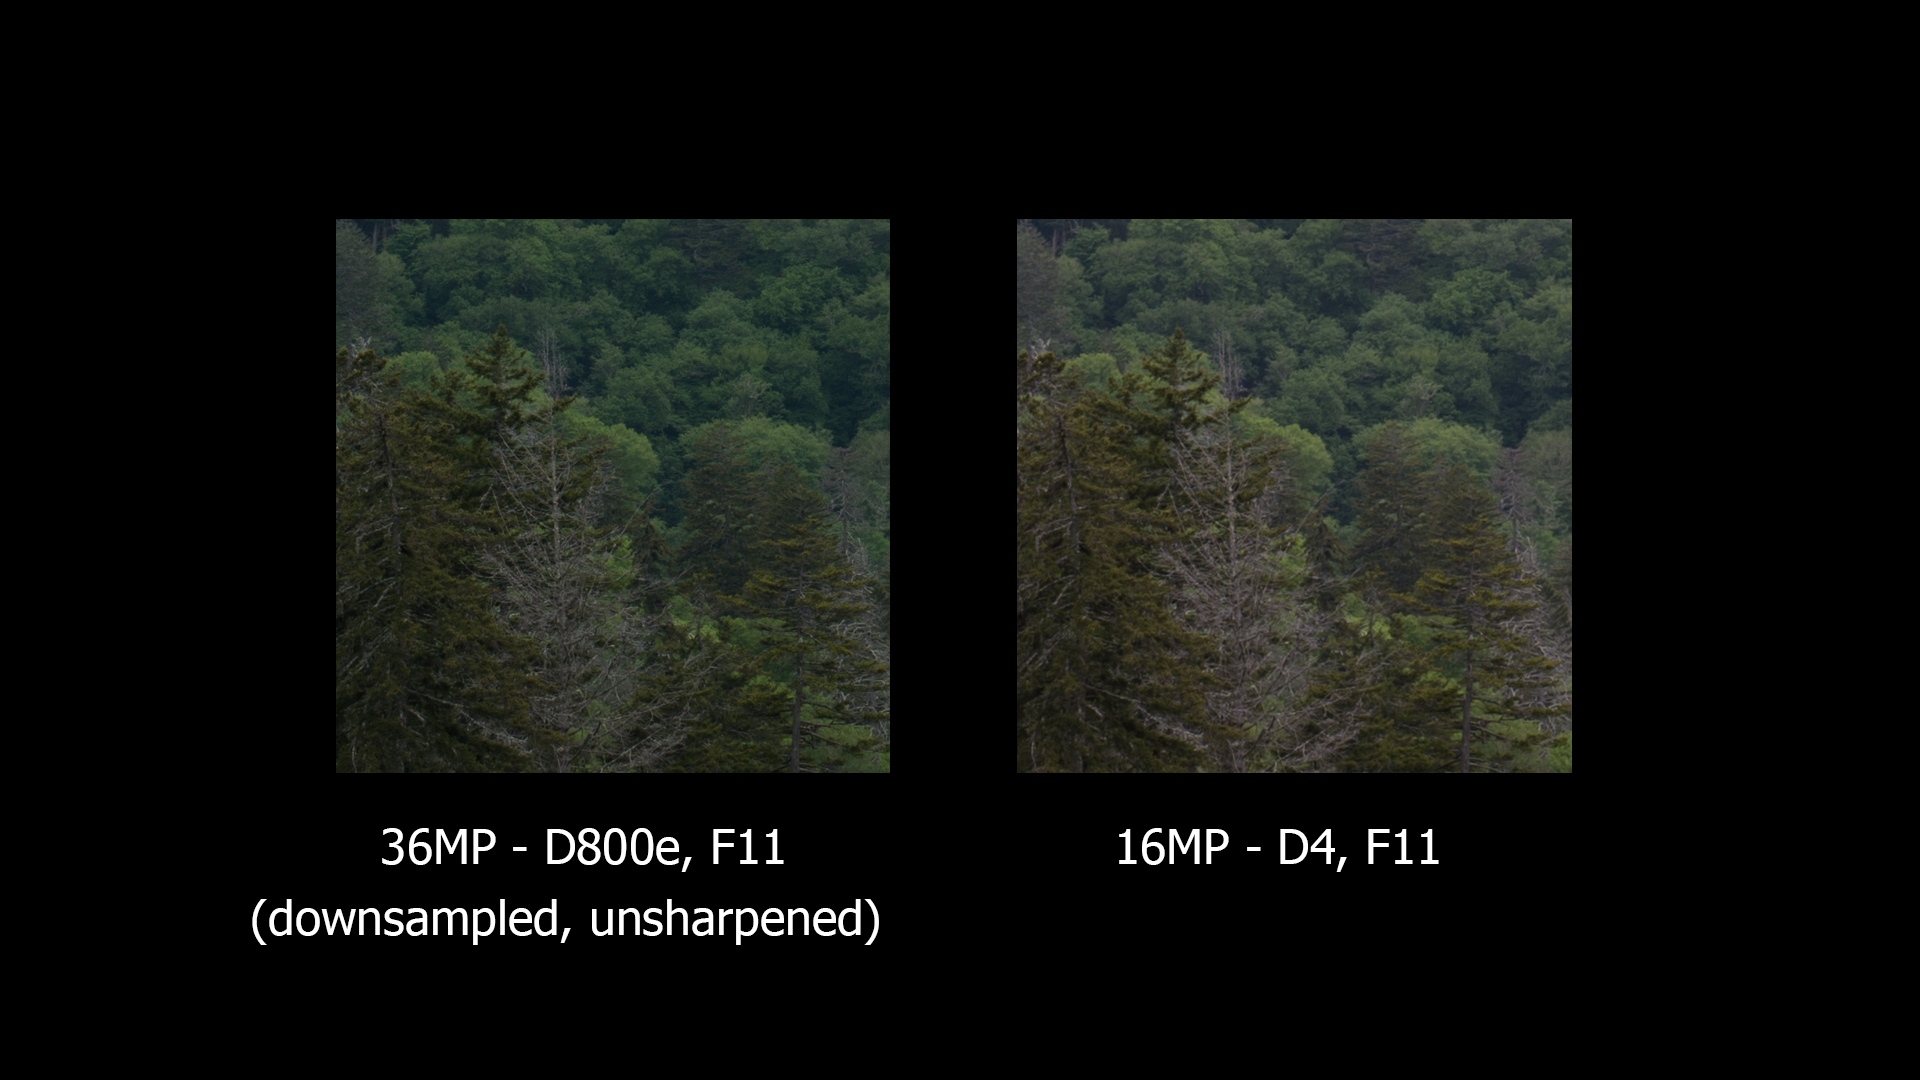 D800e downsized to D4 file size